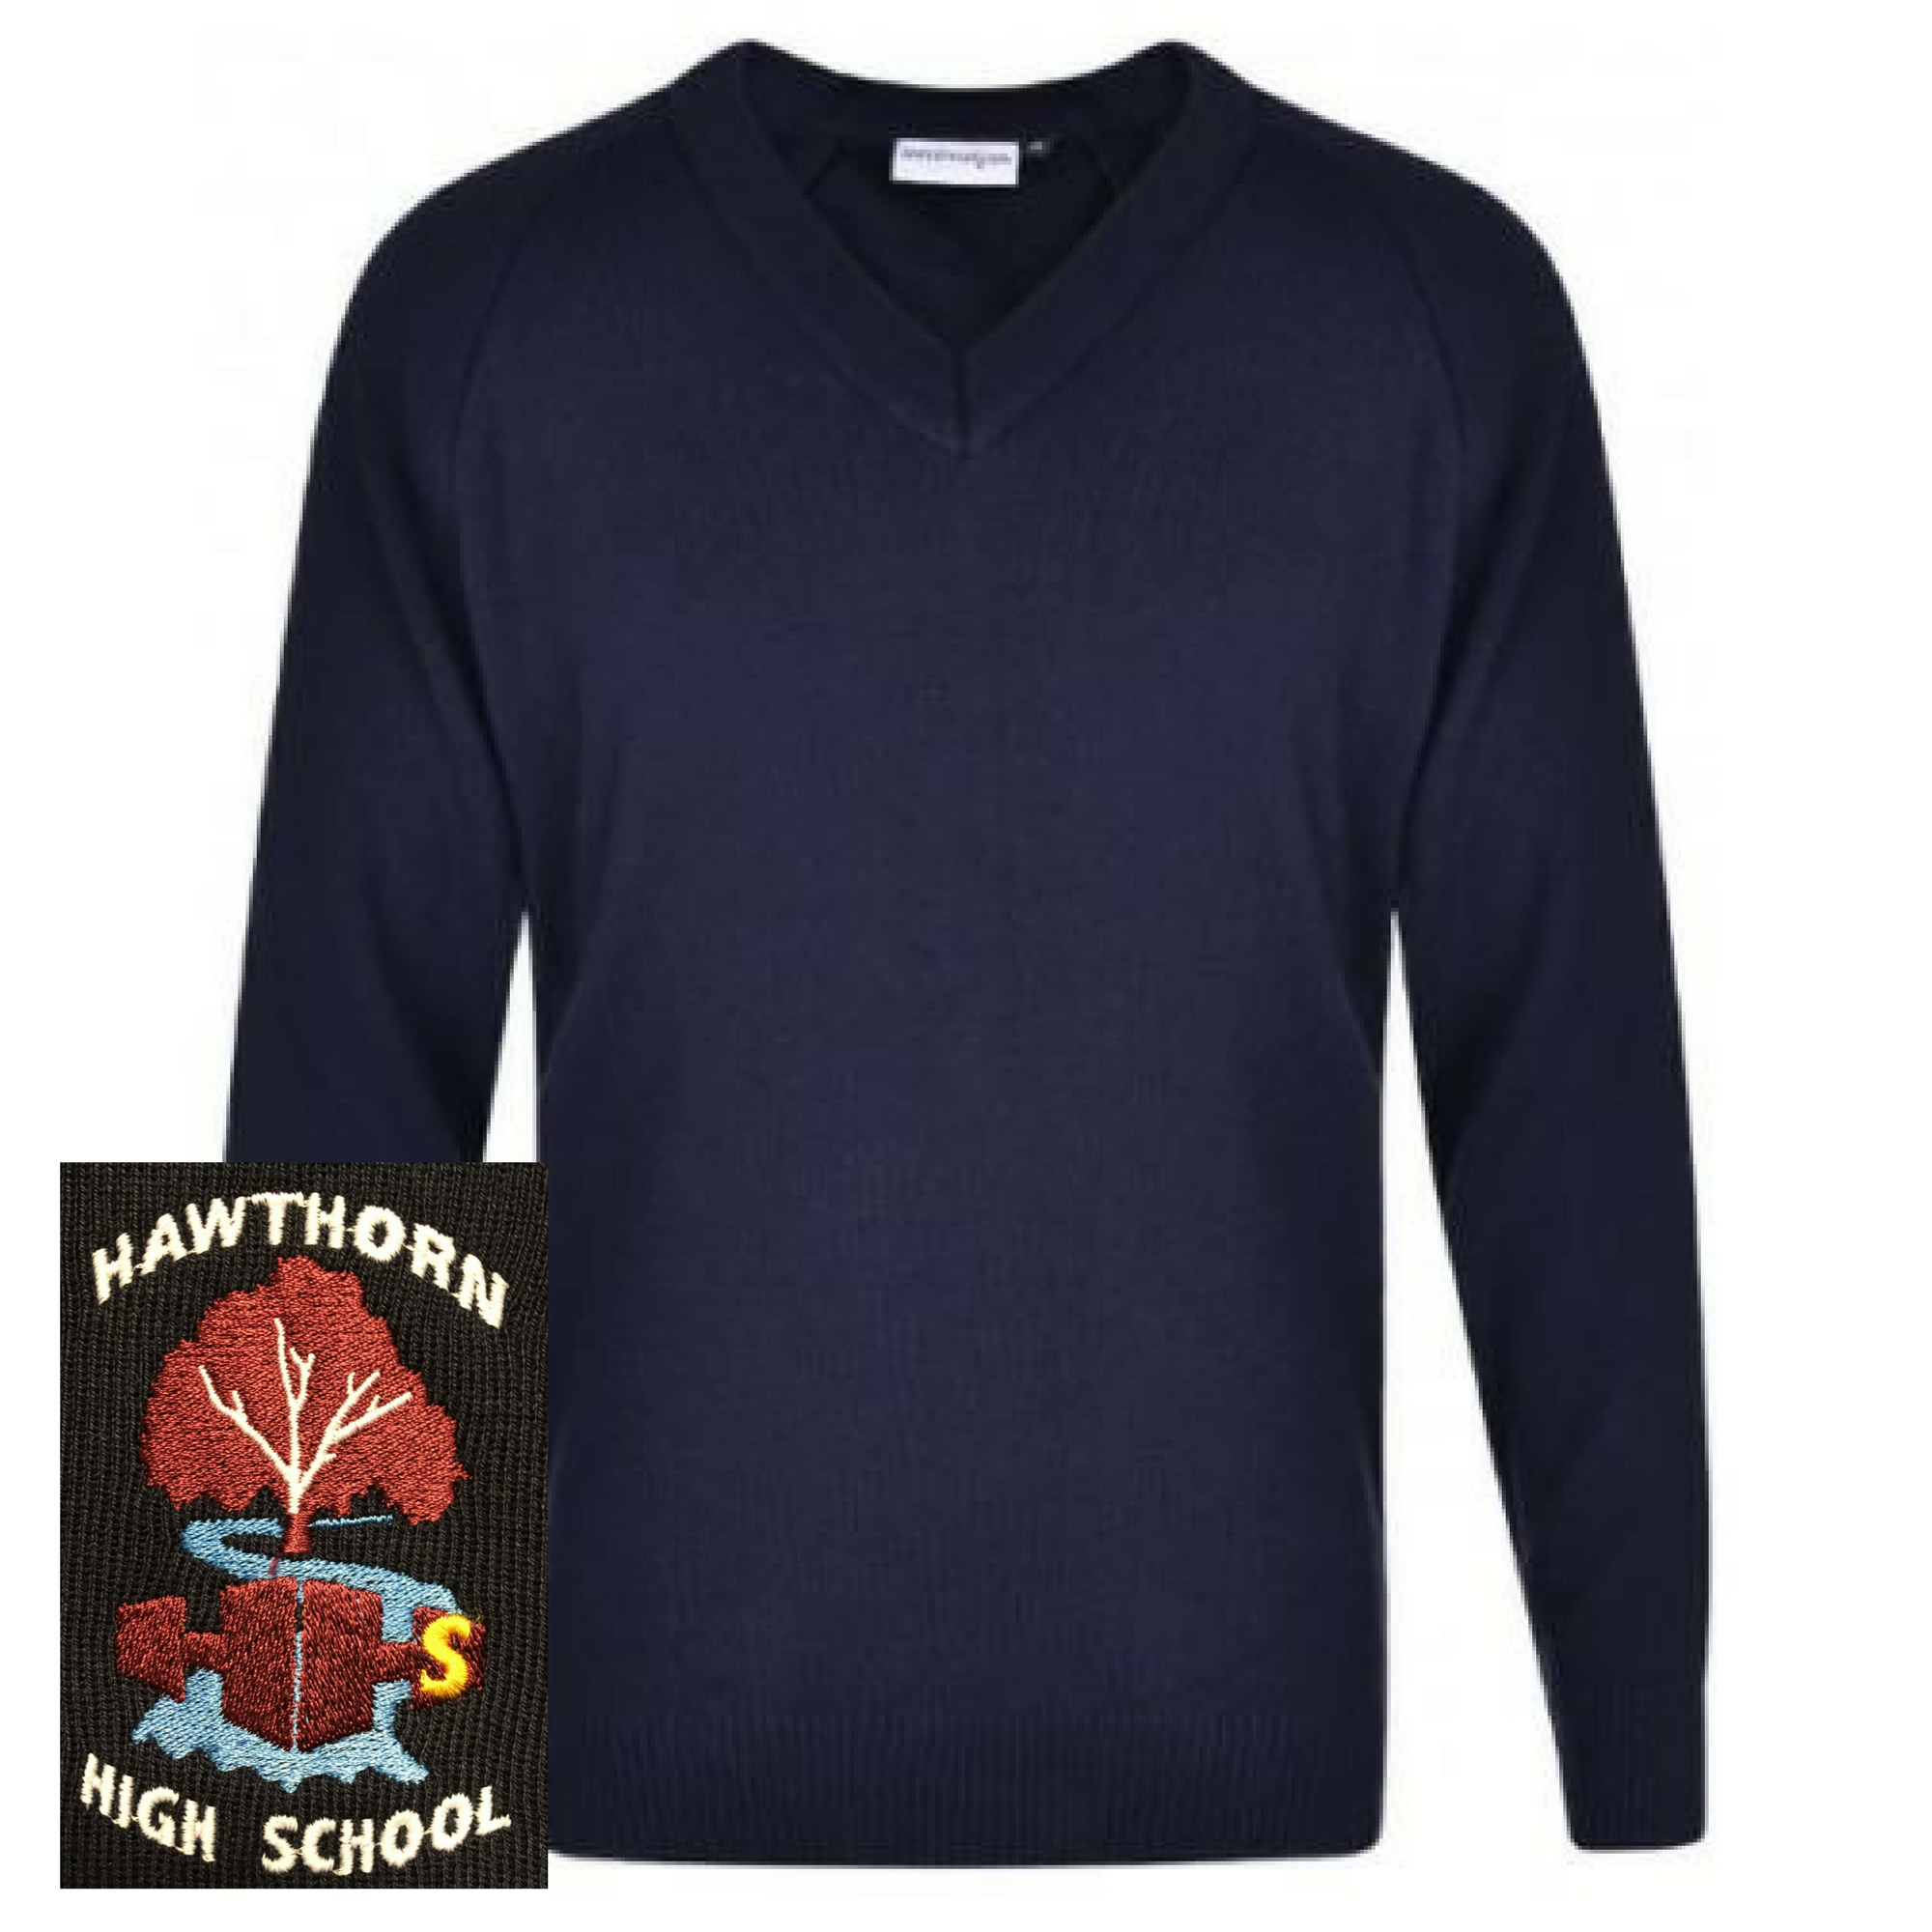 Hawthorn High School Navy Unisex V-Neck Jumper (Yr 7-8)